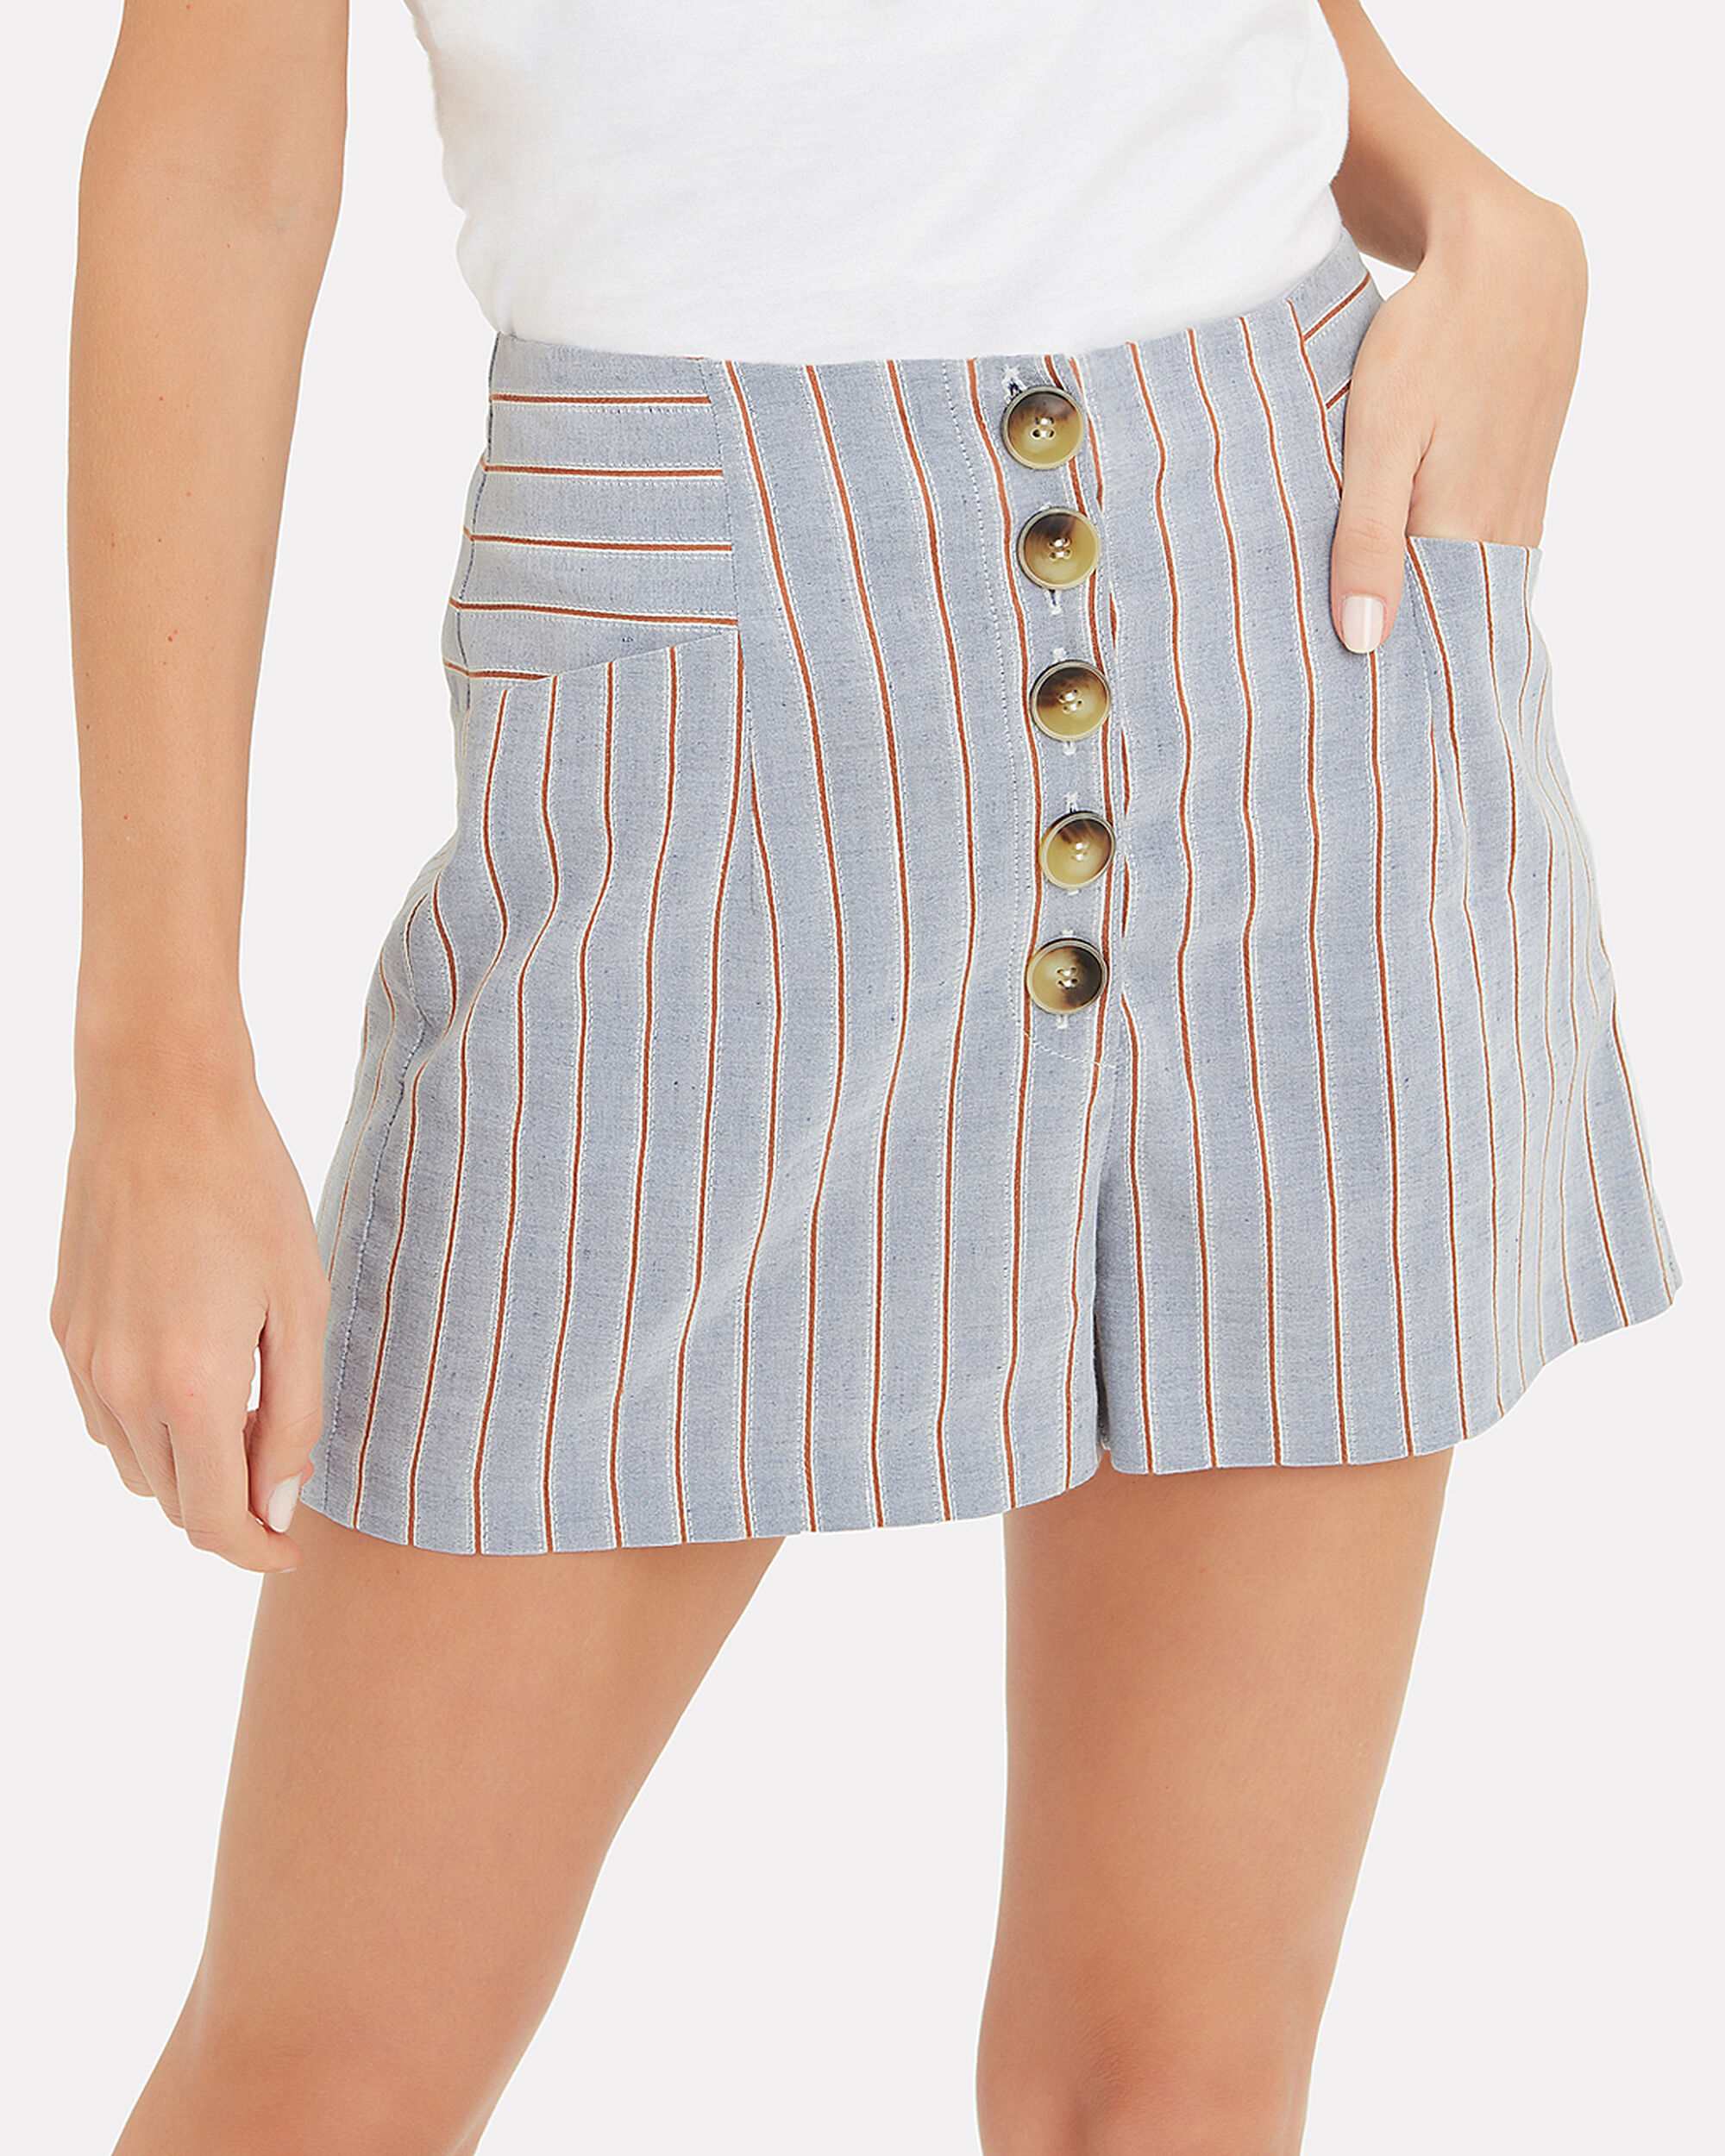 Delany Striped Linen High Waist Shorts, BLUE, hi-res